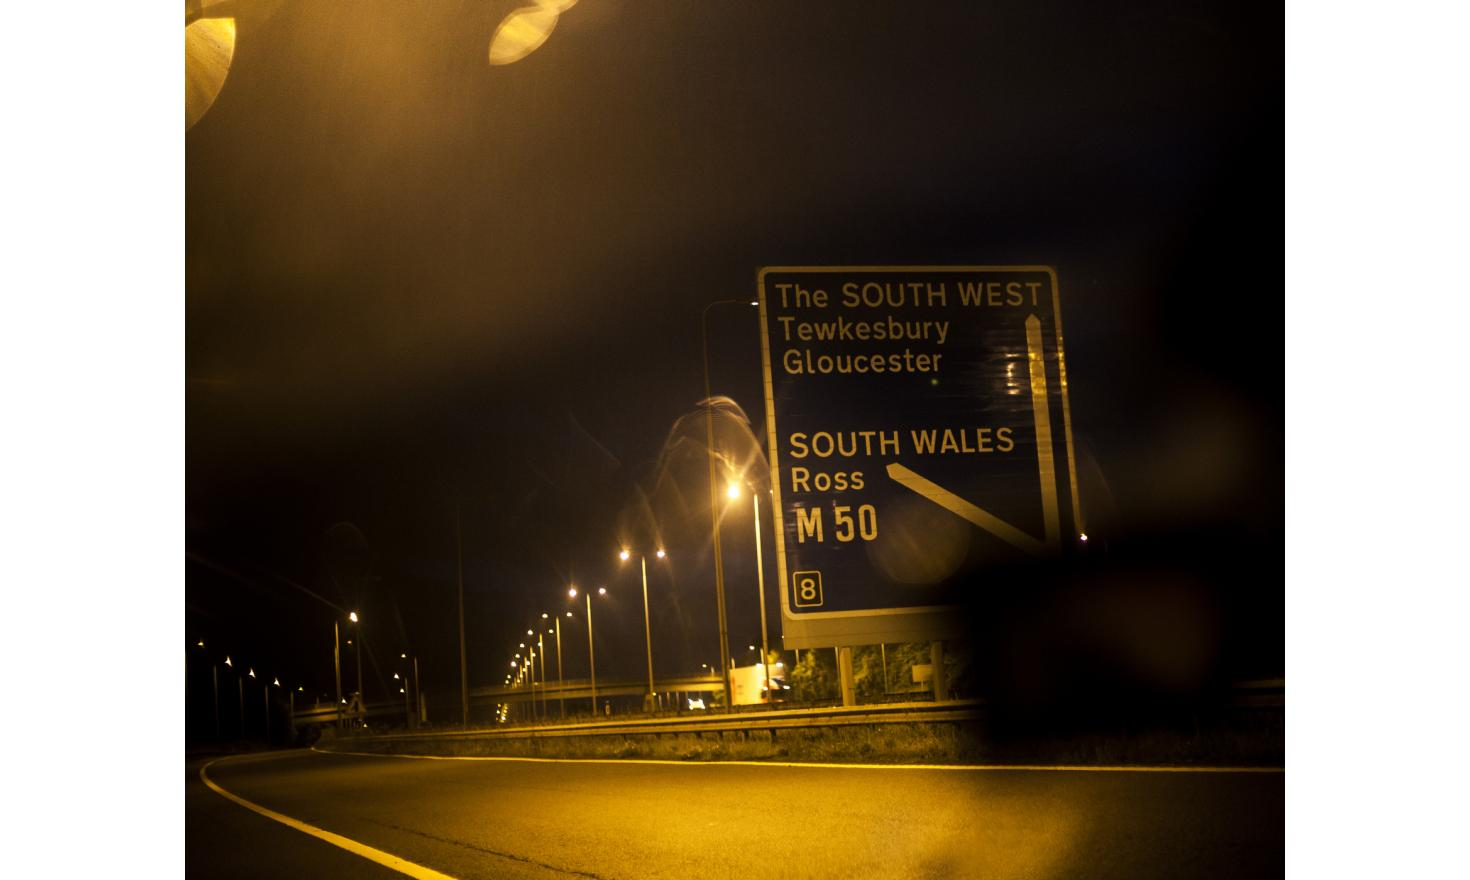 On the M5 motorway that runs north-south down the west of England, at one of the junctions leading to south Wales. Wales was the only country besides England, to vote out of the European Union.